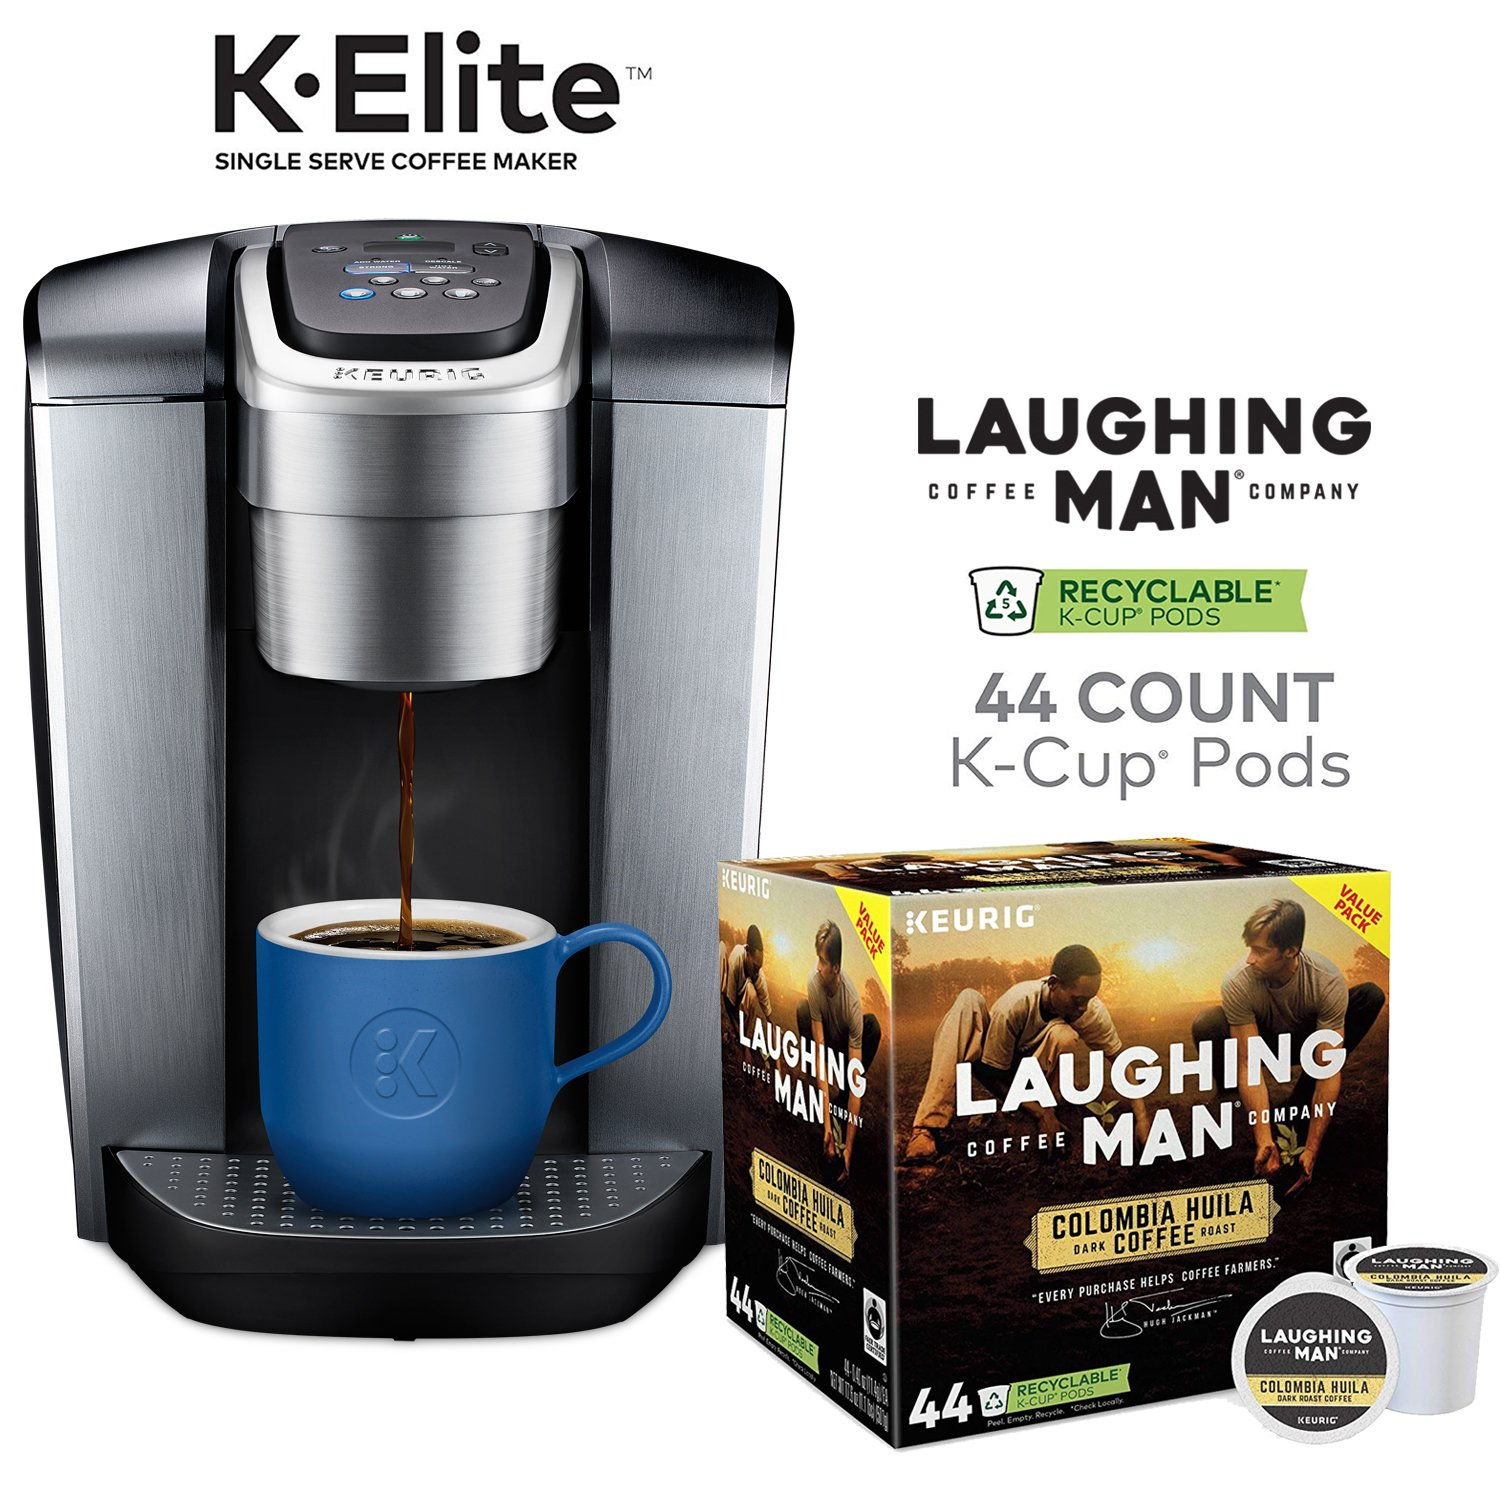 Keurig K-Elite, Brushed Silver Single Serve Coffee Maker and Laughing Man  Colombia Huila K-Cup Pods, 44 ct